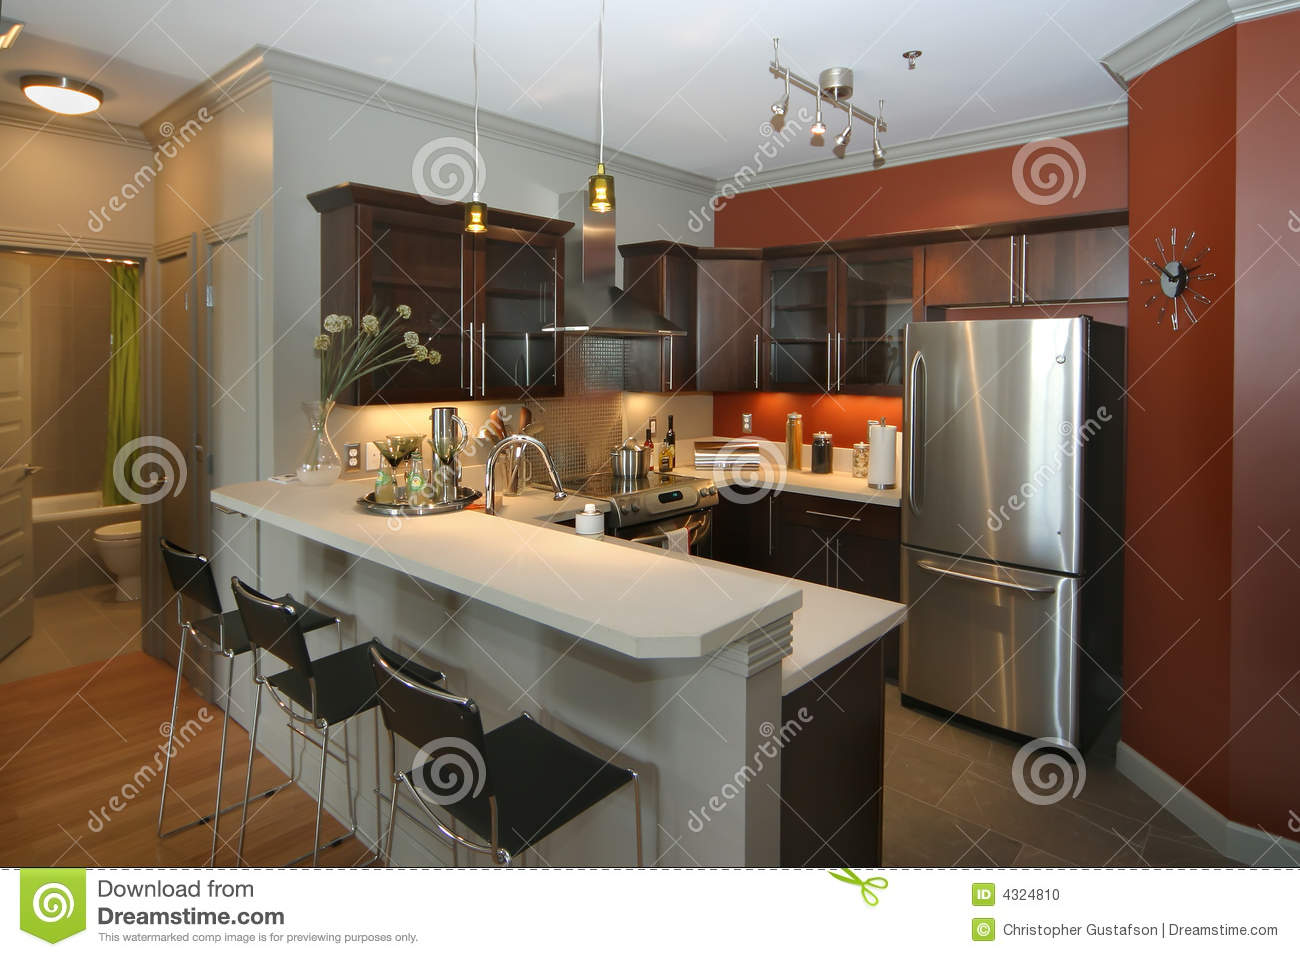 kitchen bar sink basket modern with area stock photo image of luxury